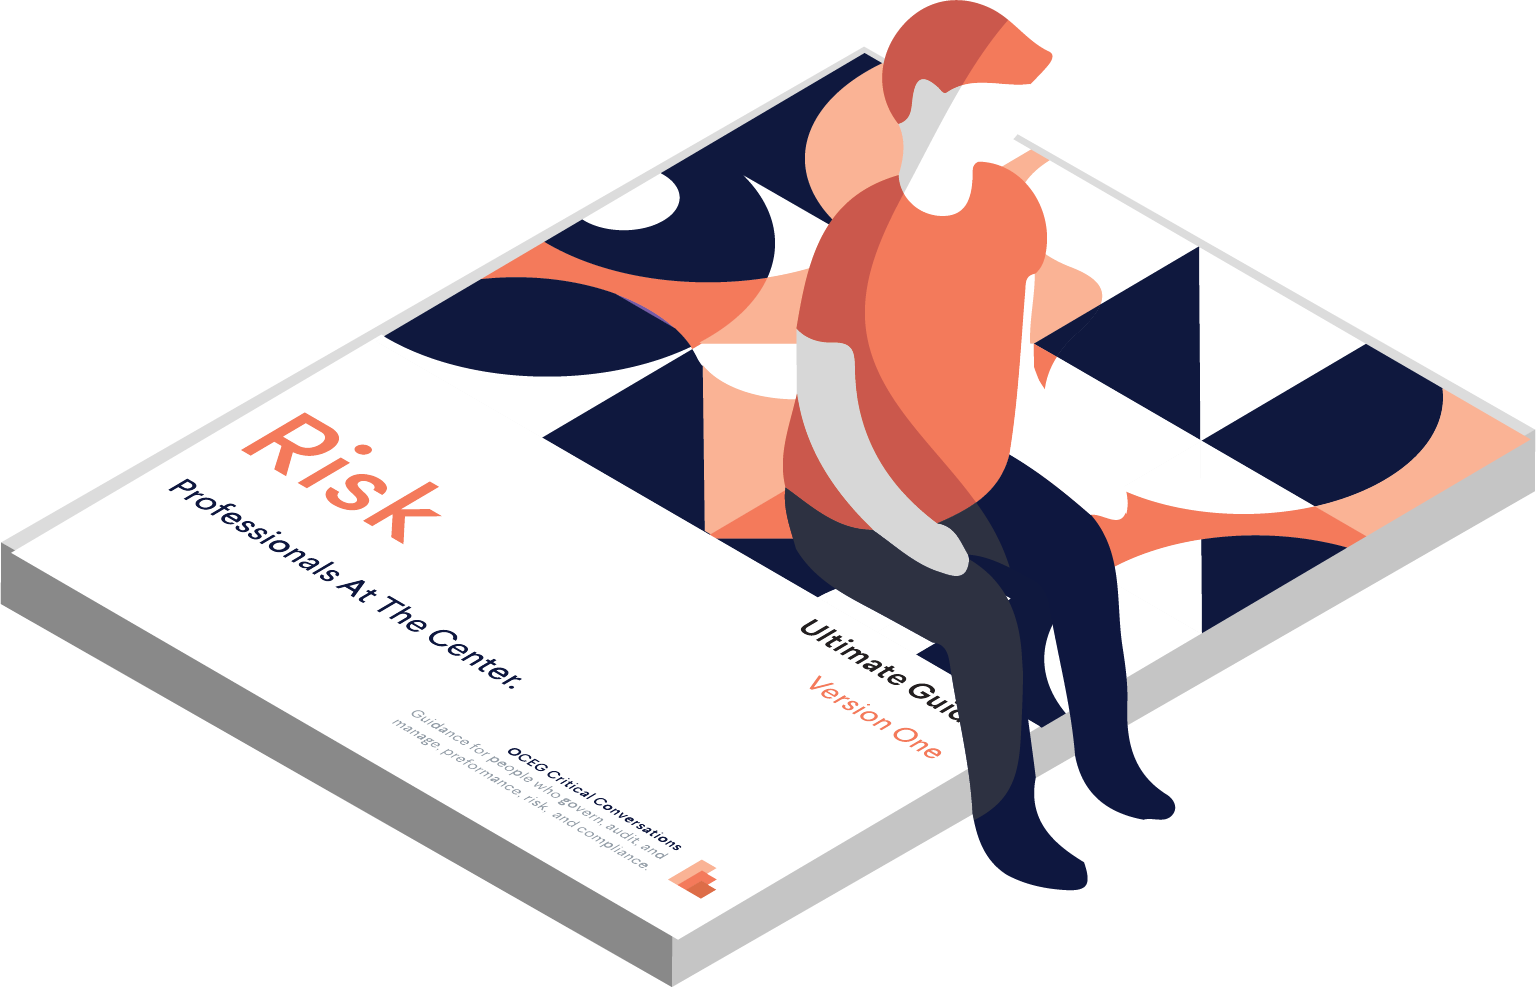 bsbrsk501a manage risk Erp project implementation: risk management case study covers the topics related to erp project implementation and risk identification and monitoring.